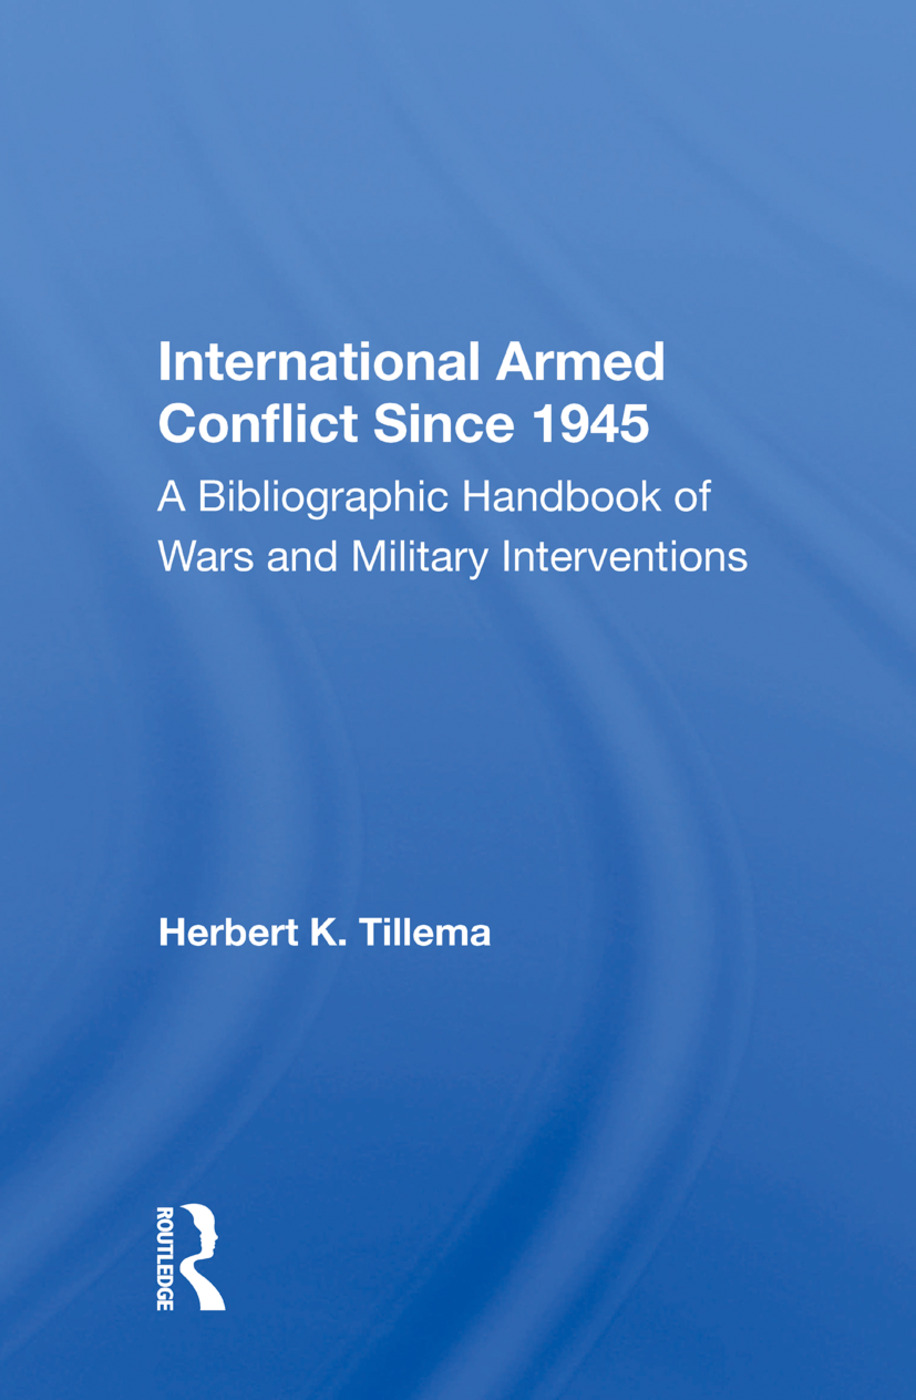 International Armed Conflict Since 1945: A Bibliographic Handbook of Wars and Military Interventions book cover